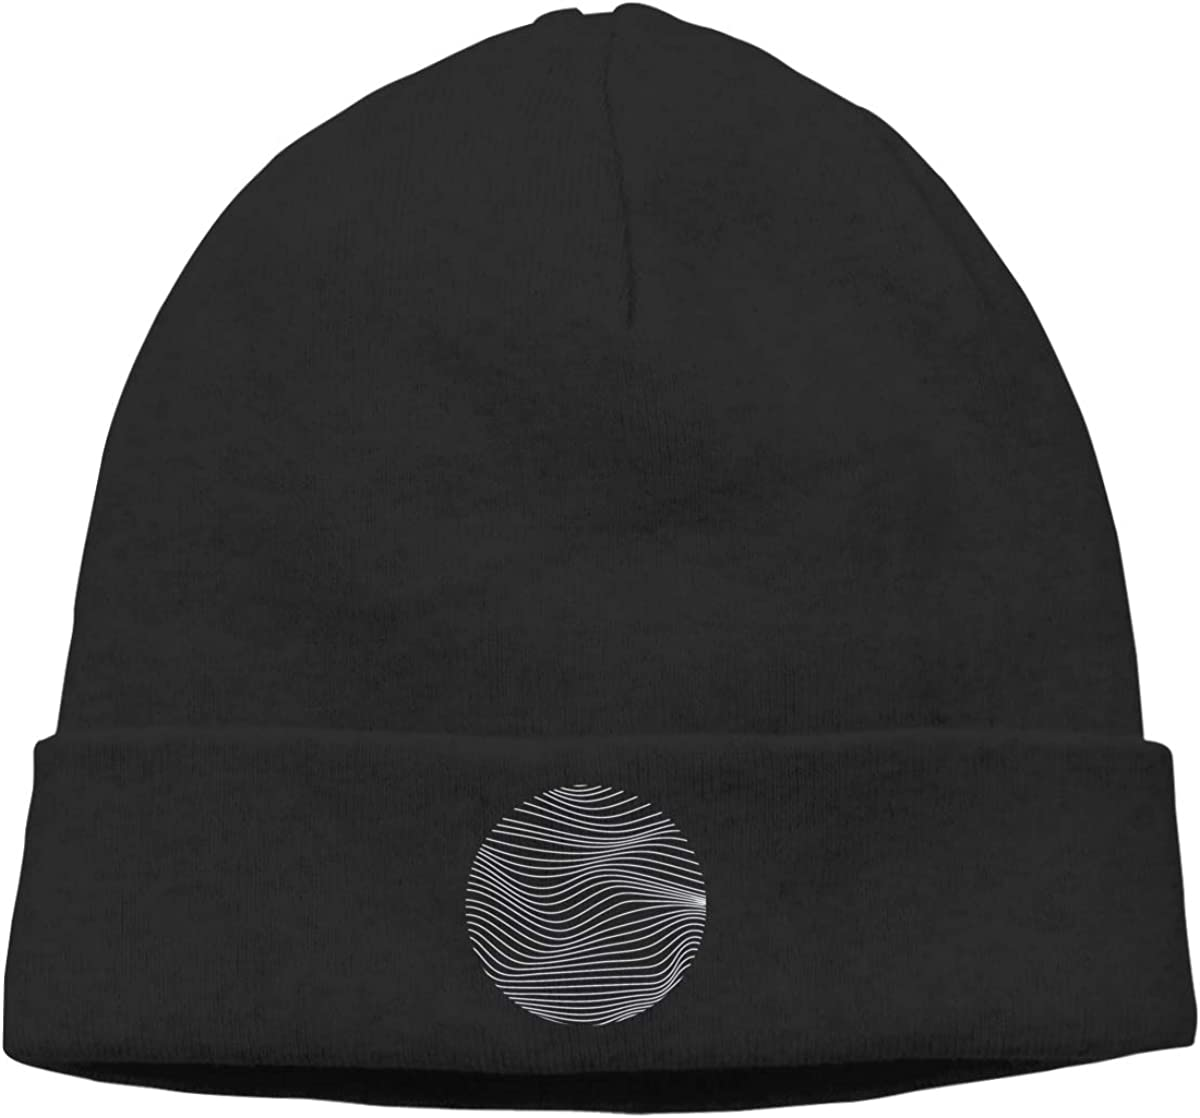 Circle Line Waves Men Winter Summer Oversized Baggy Beanie Hats